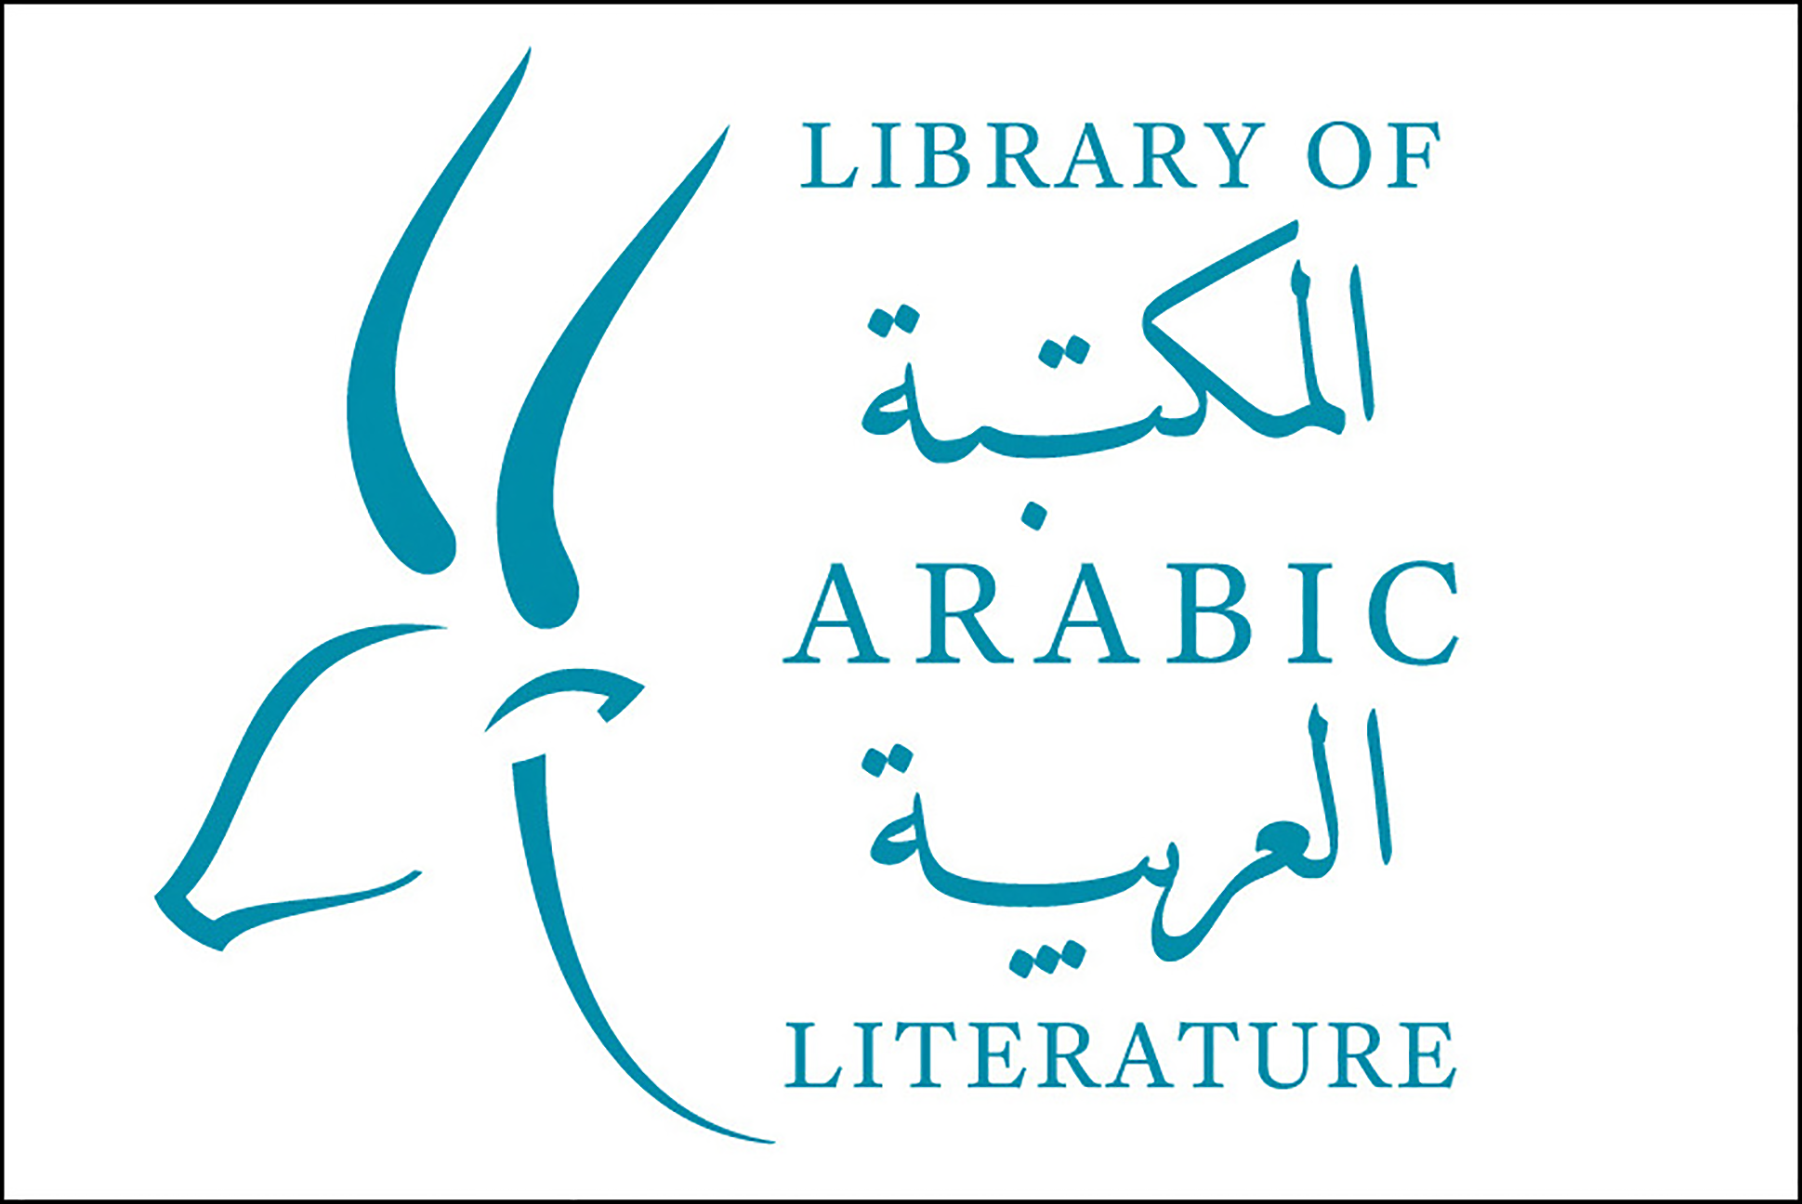 The Library of Arabic Literature